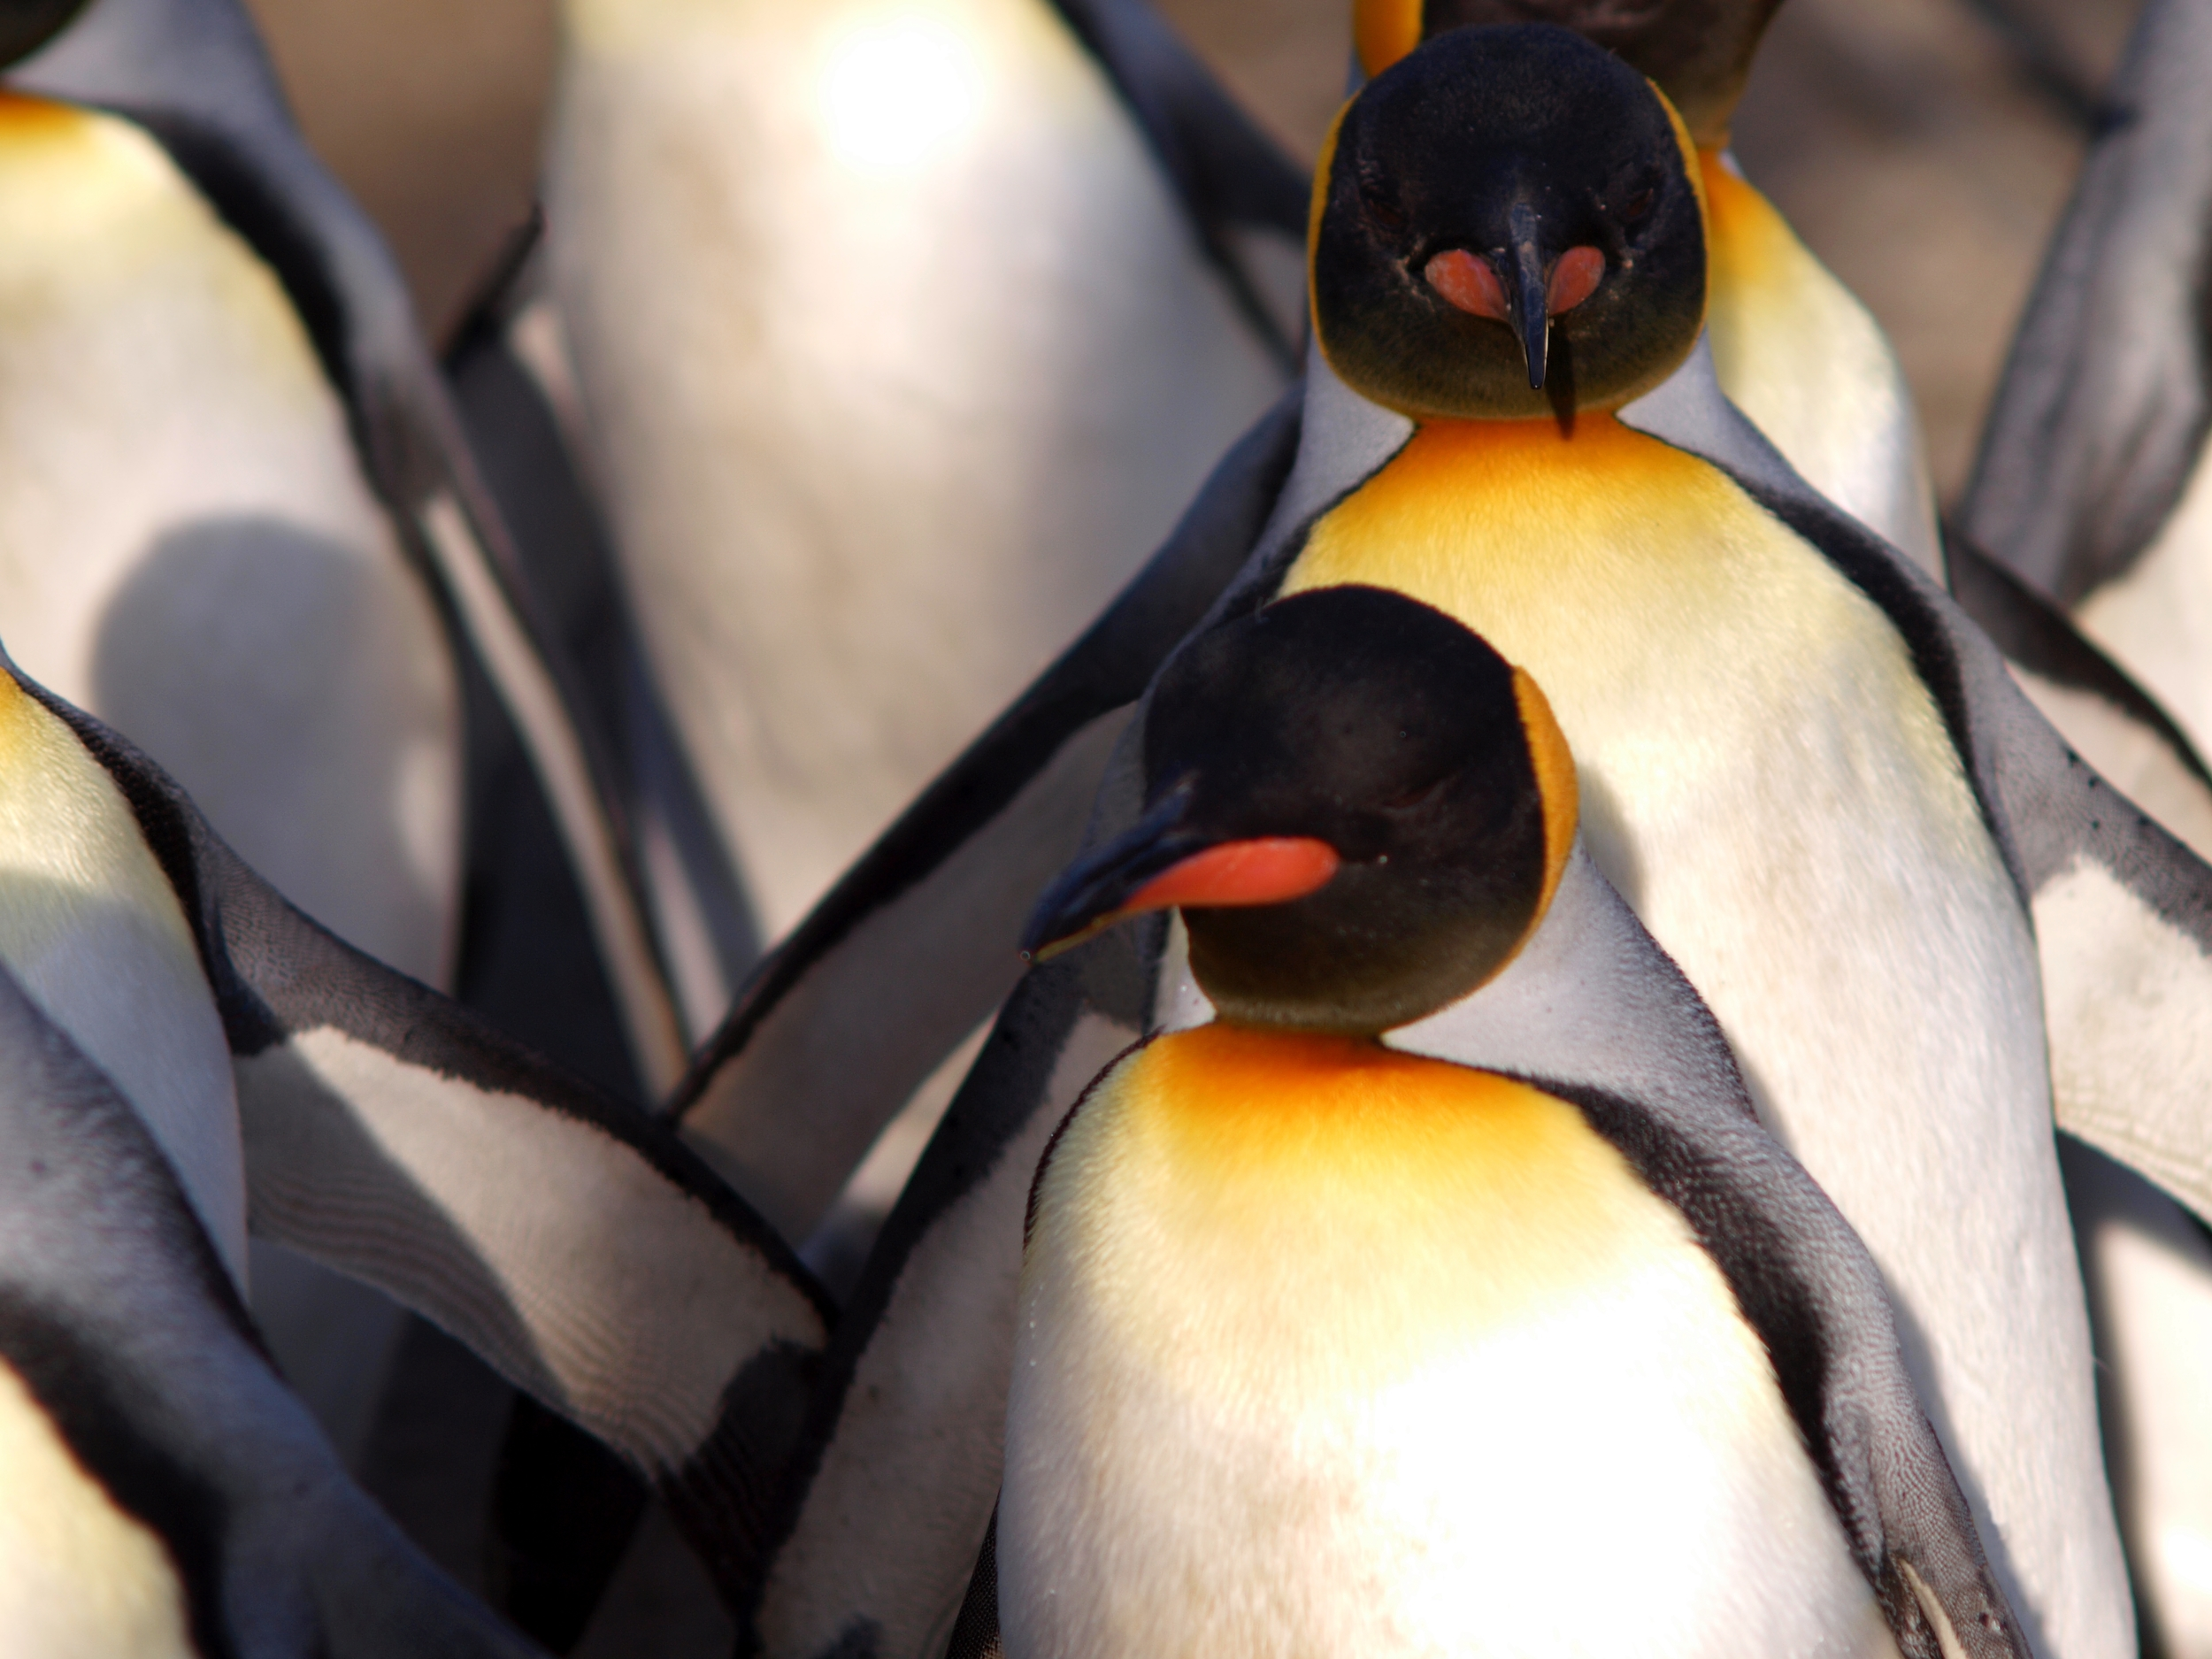 penguin parade, book promotion ideas